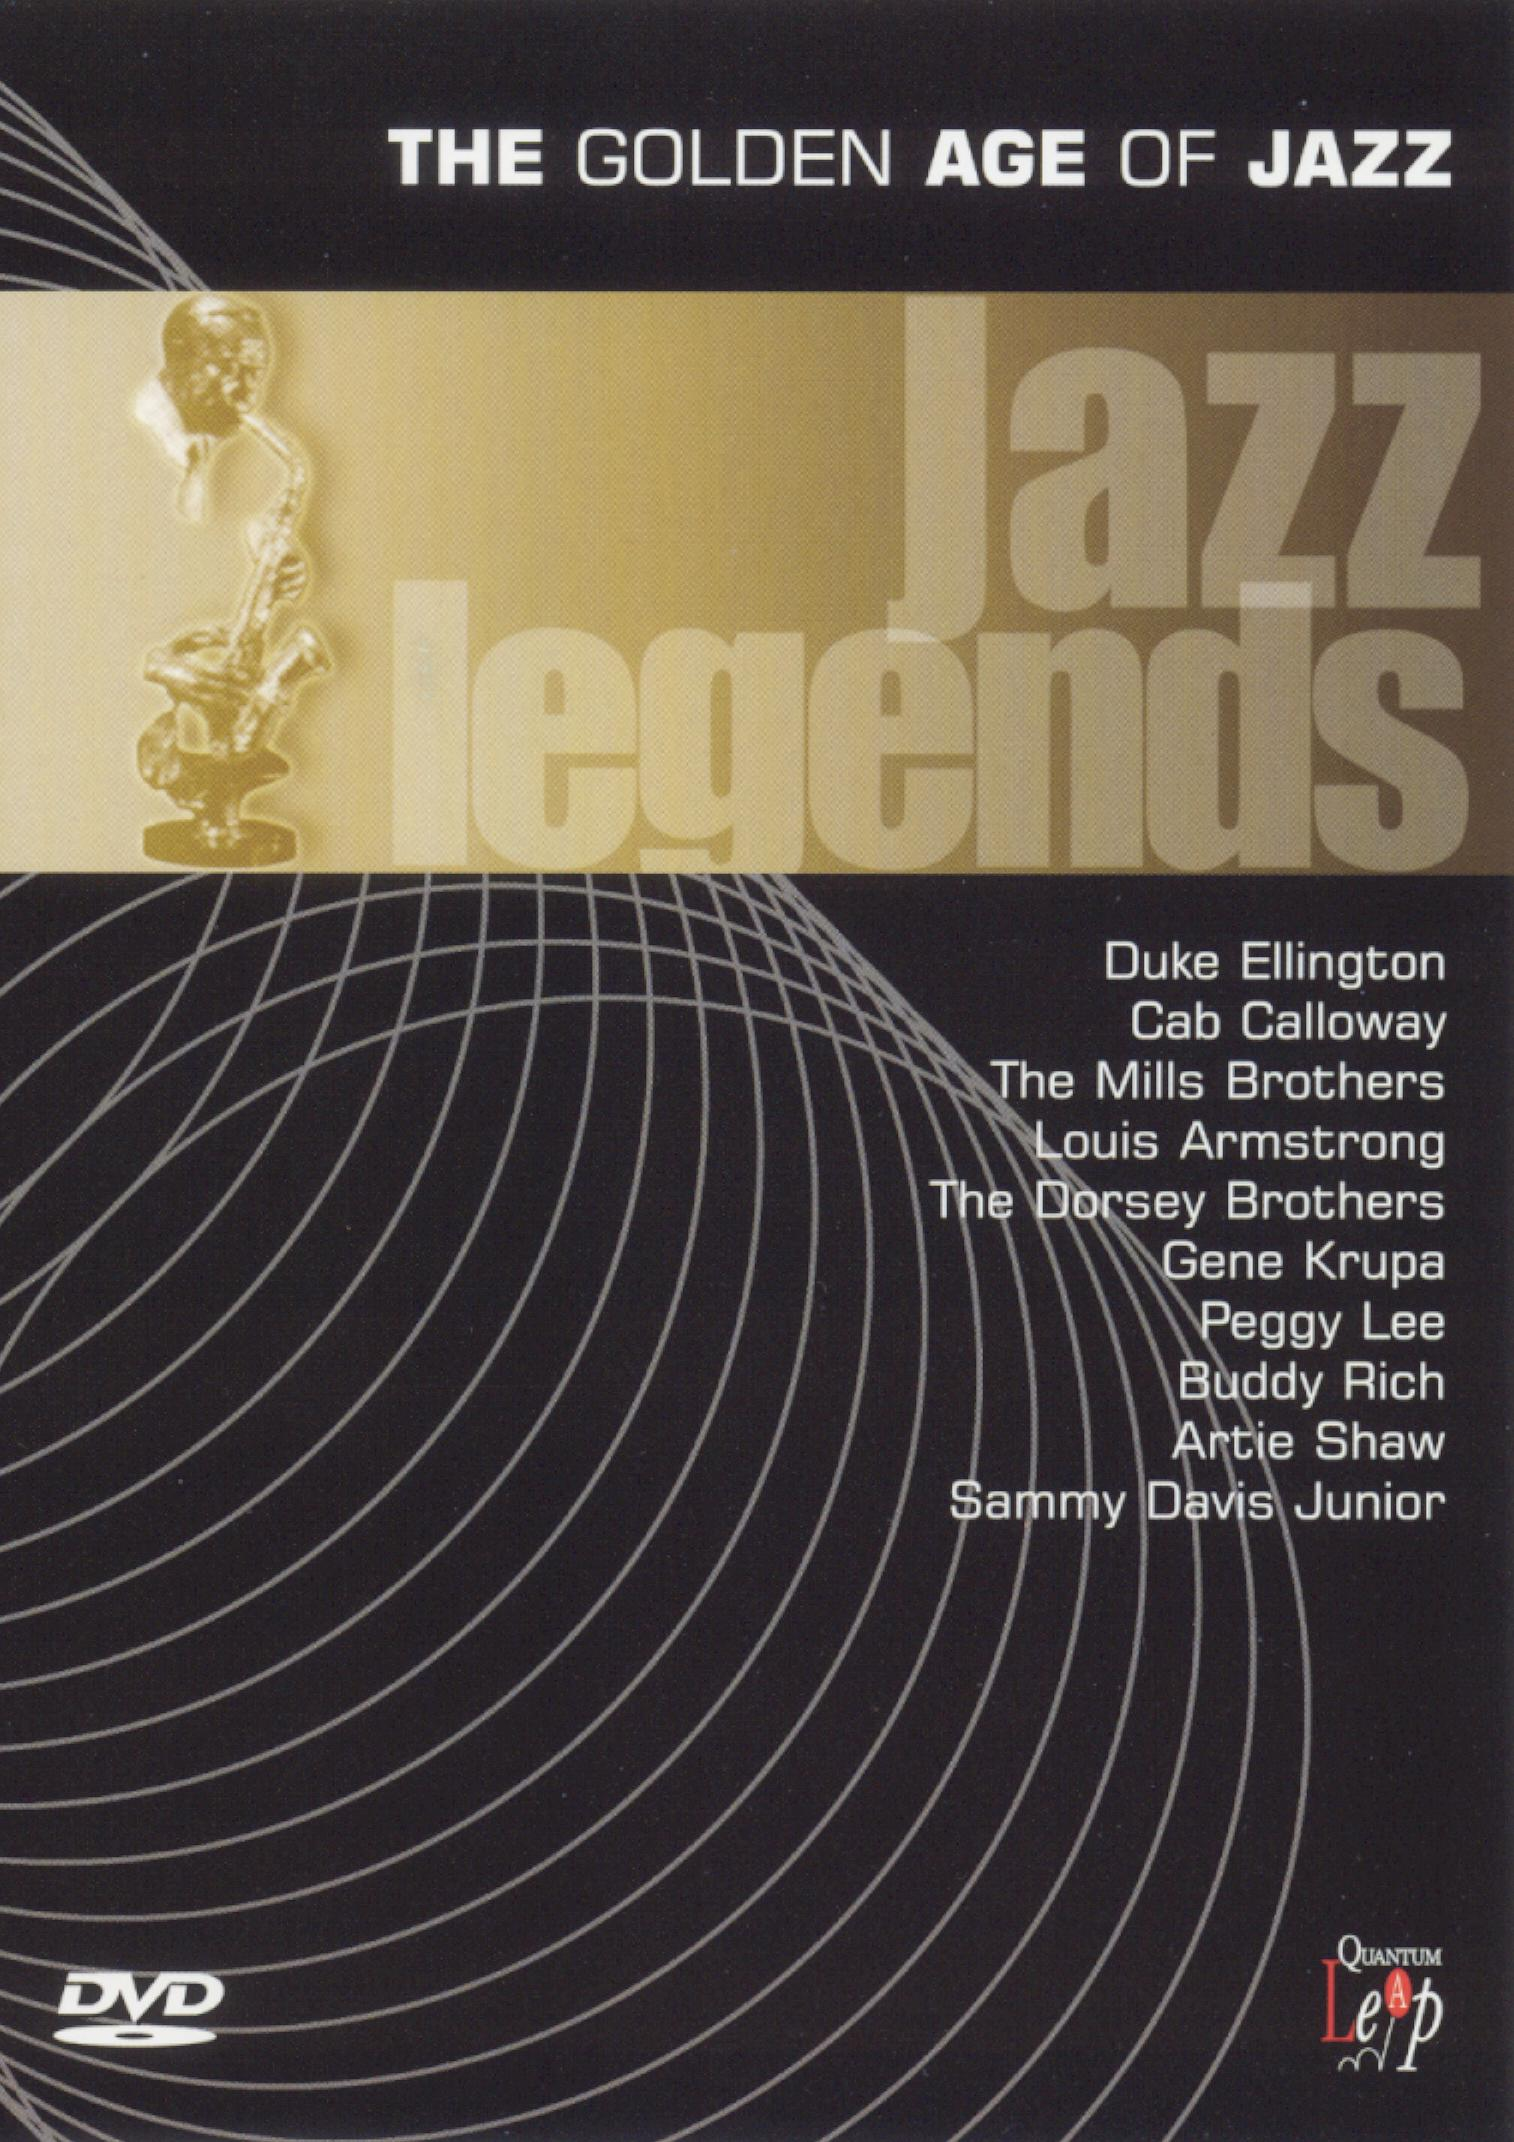 The Golden Age of Jazz, Vol. 1